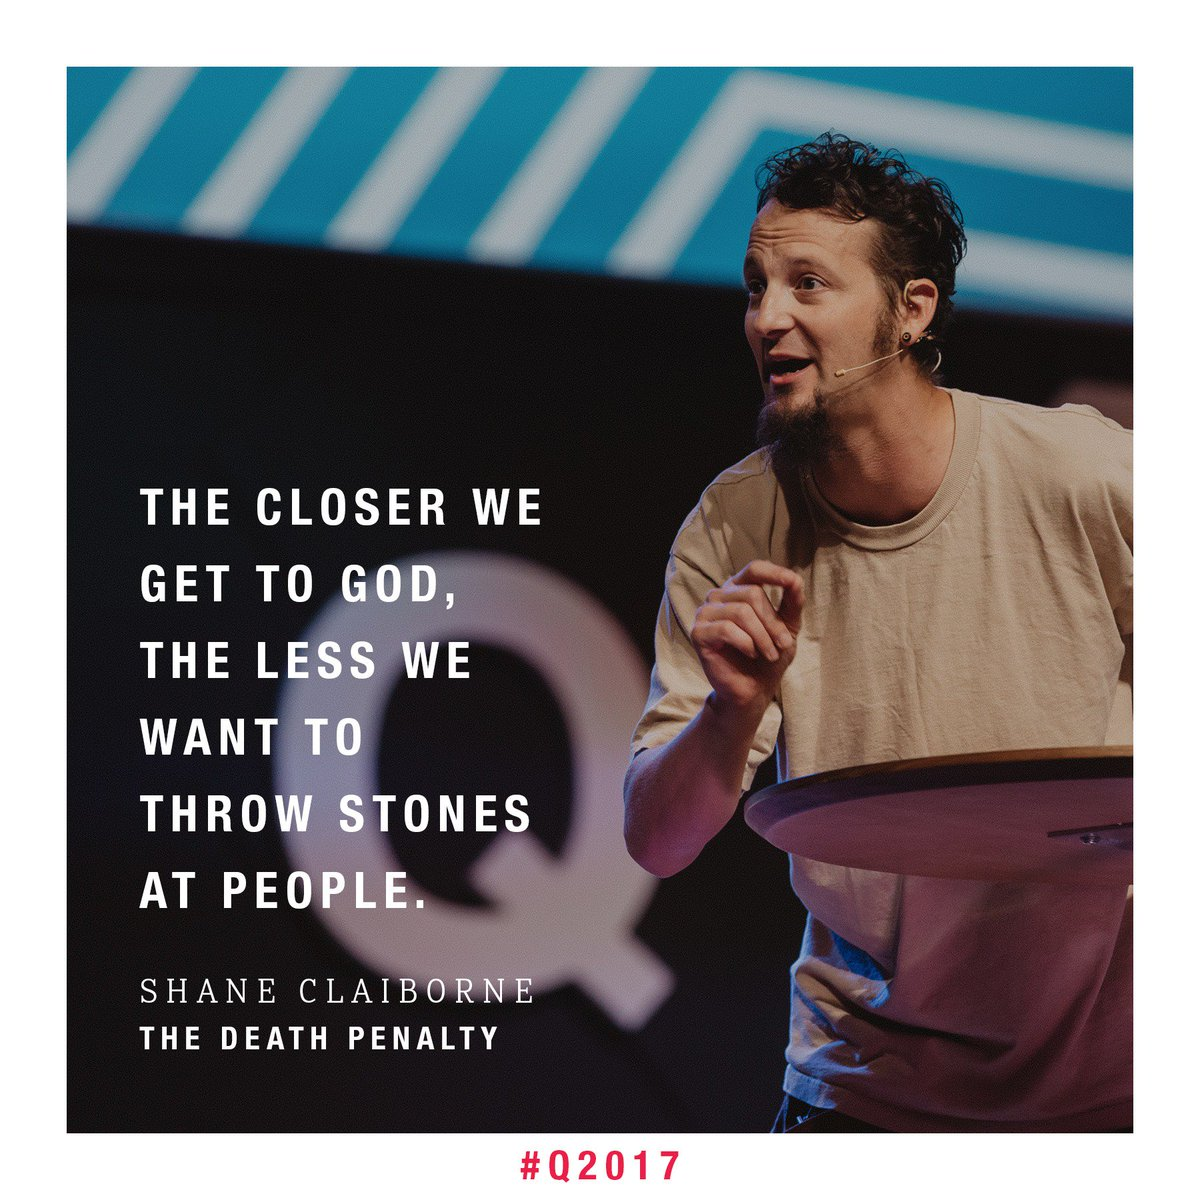 """""""The closer we get to God, the less we want to throw stones at people."""" @ShaneClaiborne #Q2017 https://t.co/XeUZOa99VU"""